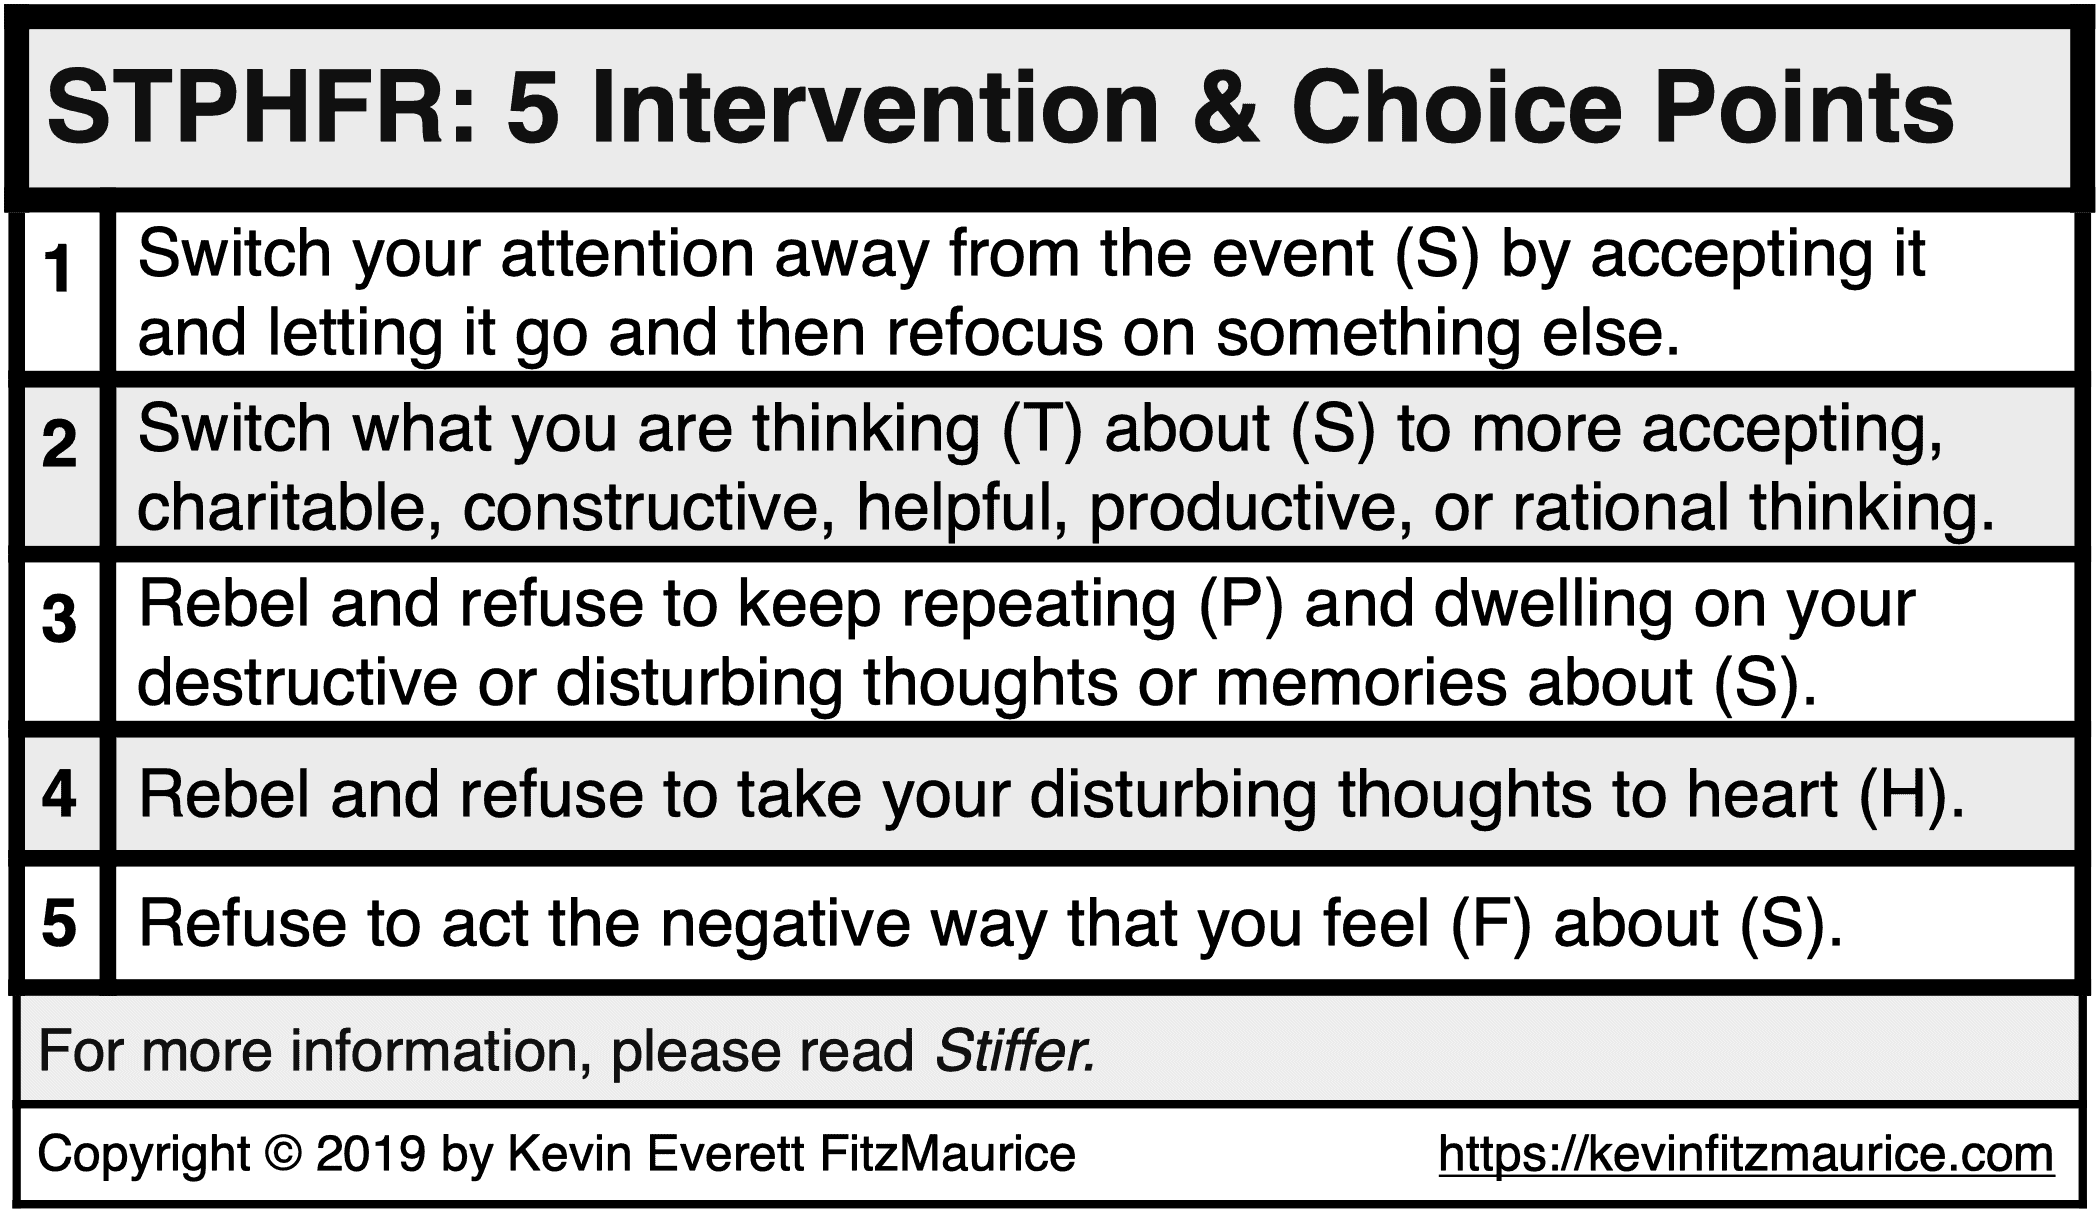 STPHFR Provides 5 Intervention and Choice Points